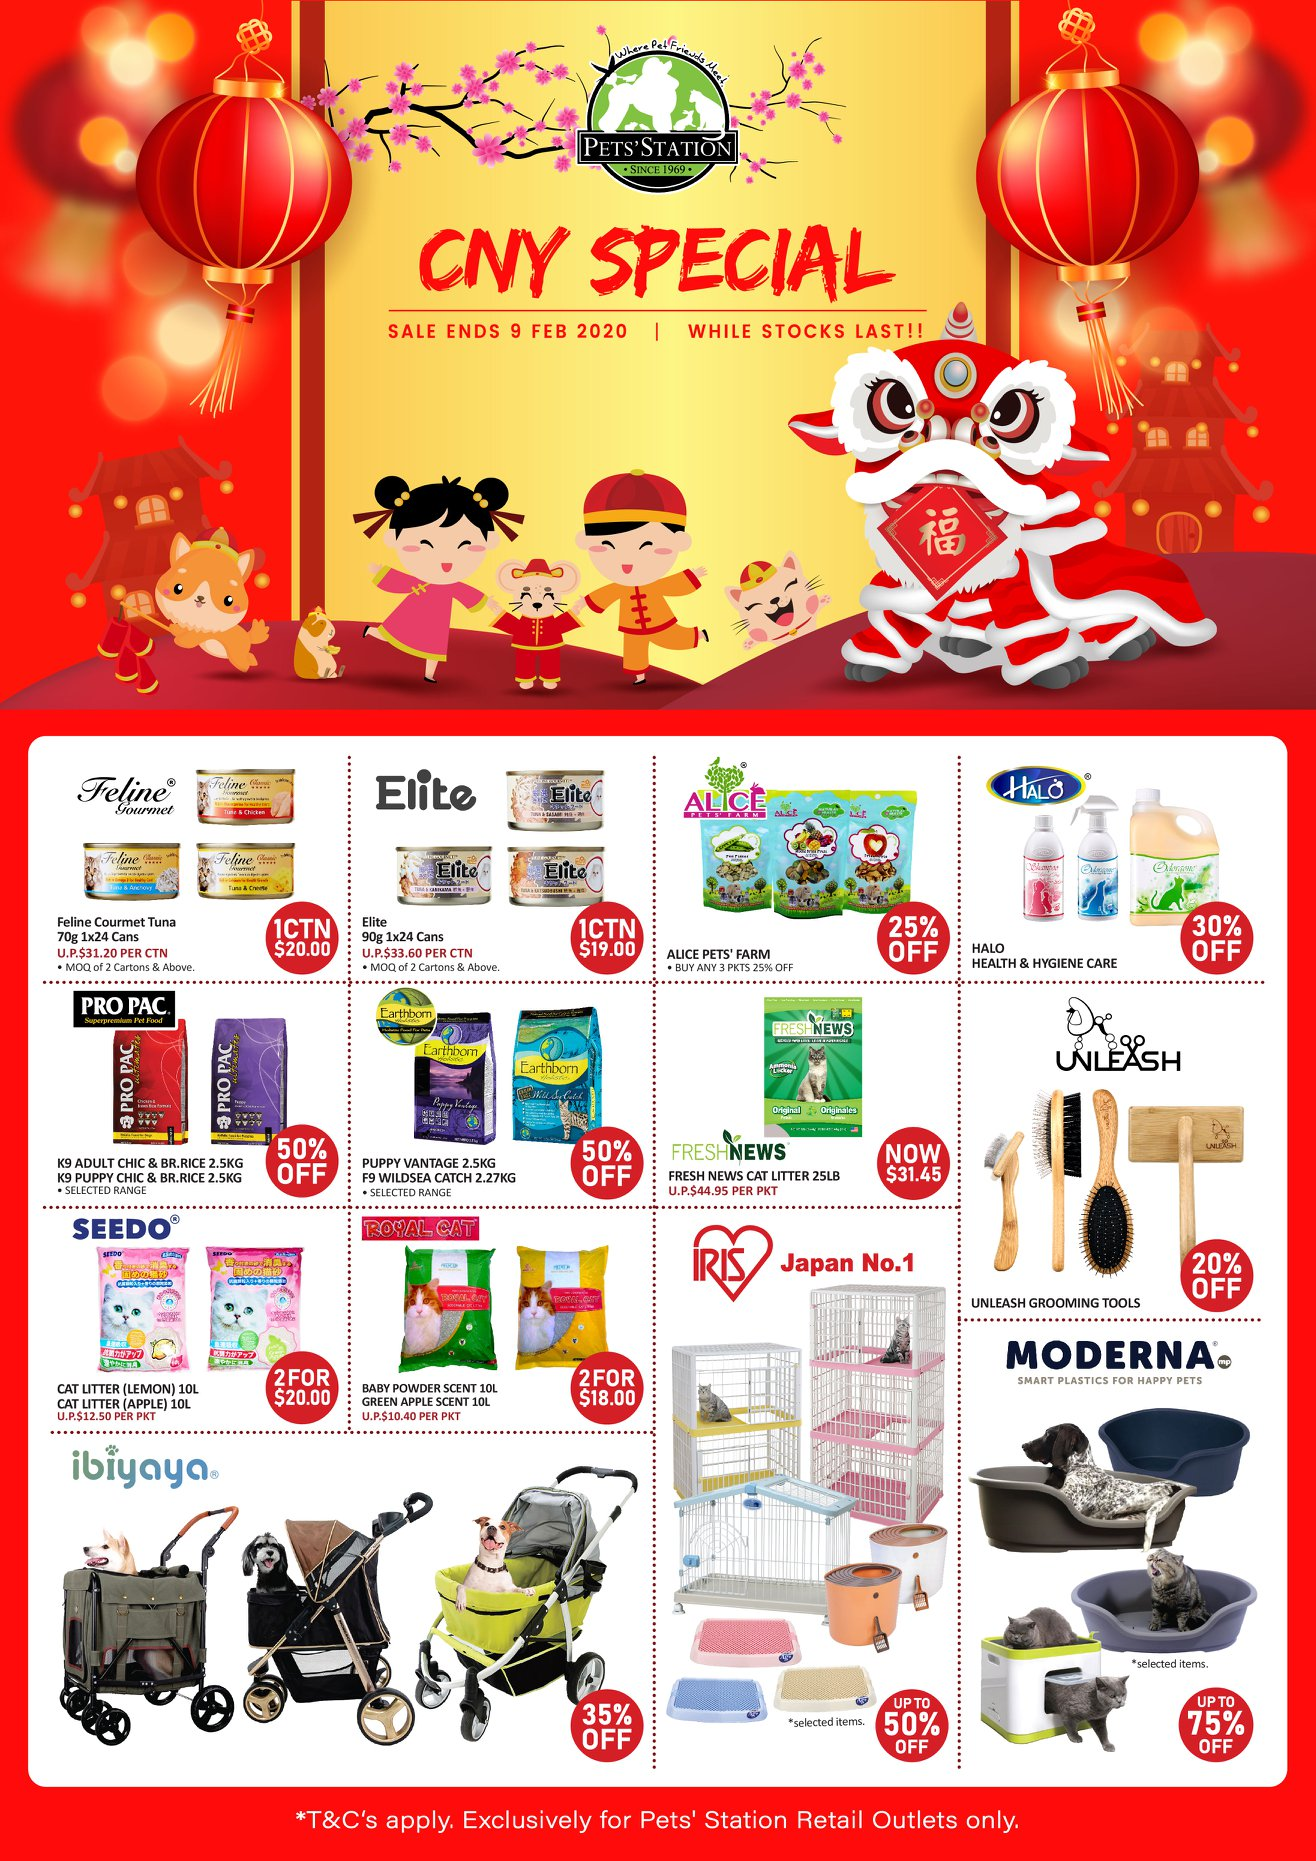 Pets' Station SG CNY Special Up to 75% Off | Why Not Deals & Promotions